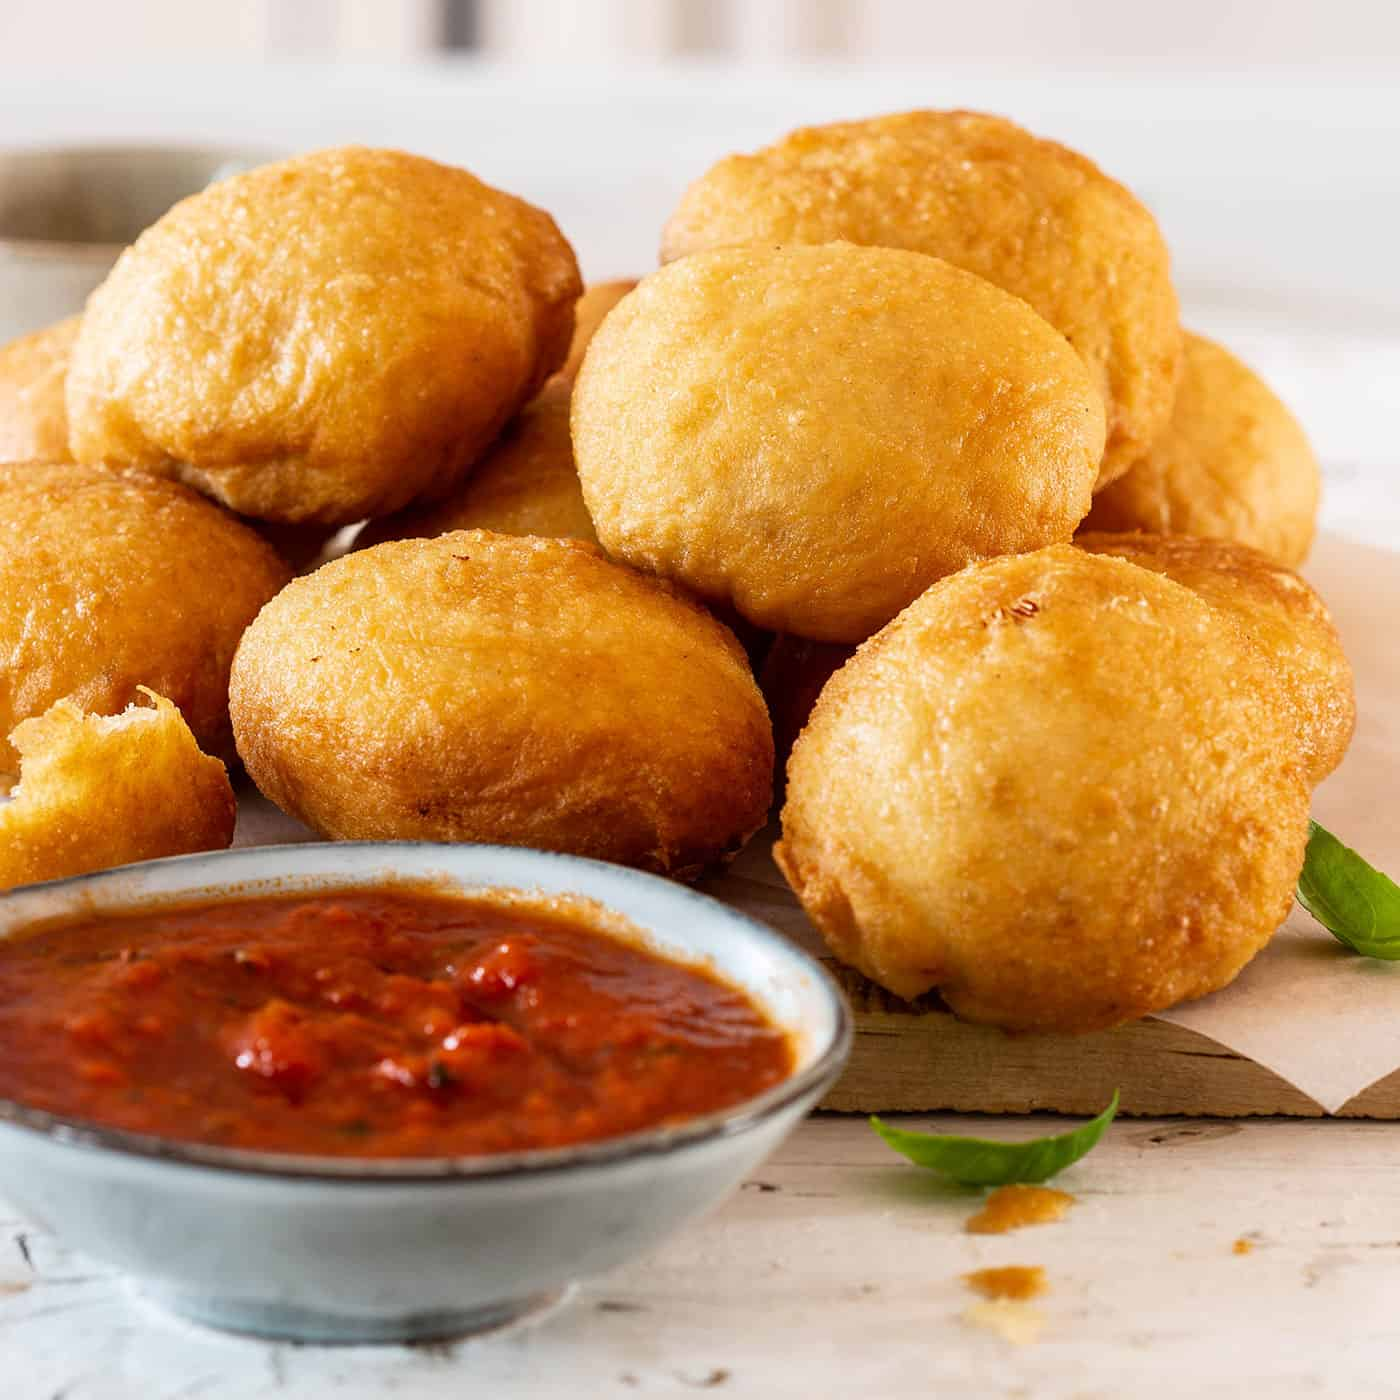 Fried pizza dough balls with tomato sauce on a board.